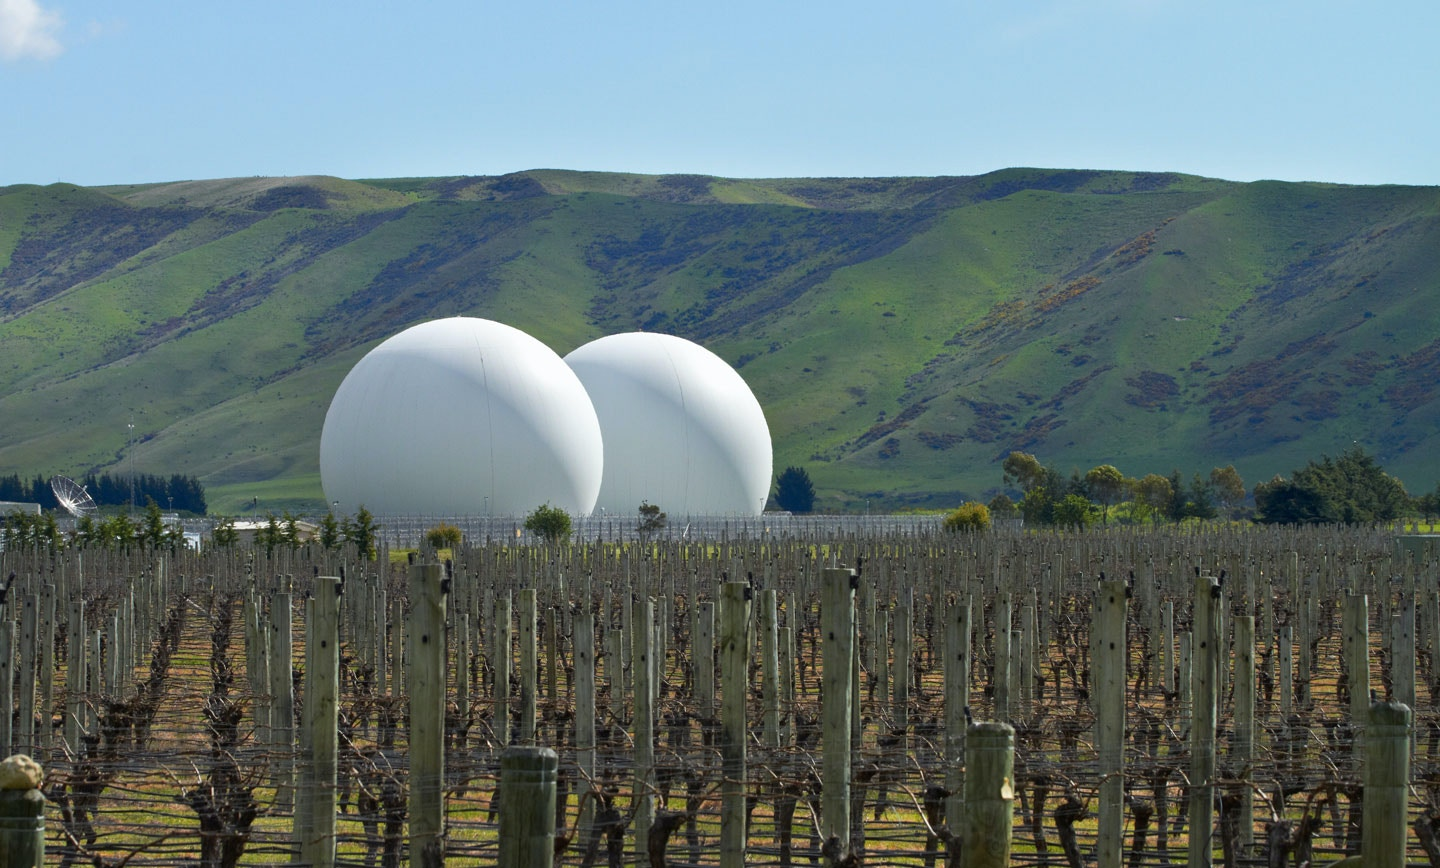 Domes covering satellite dishes in Waihopai Valley, near Blenheim, Marlborough, South Island, New Zealand.